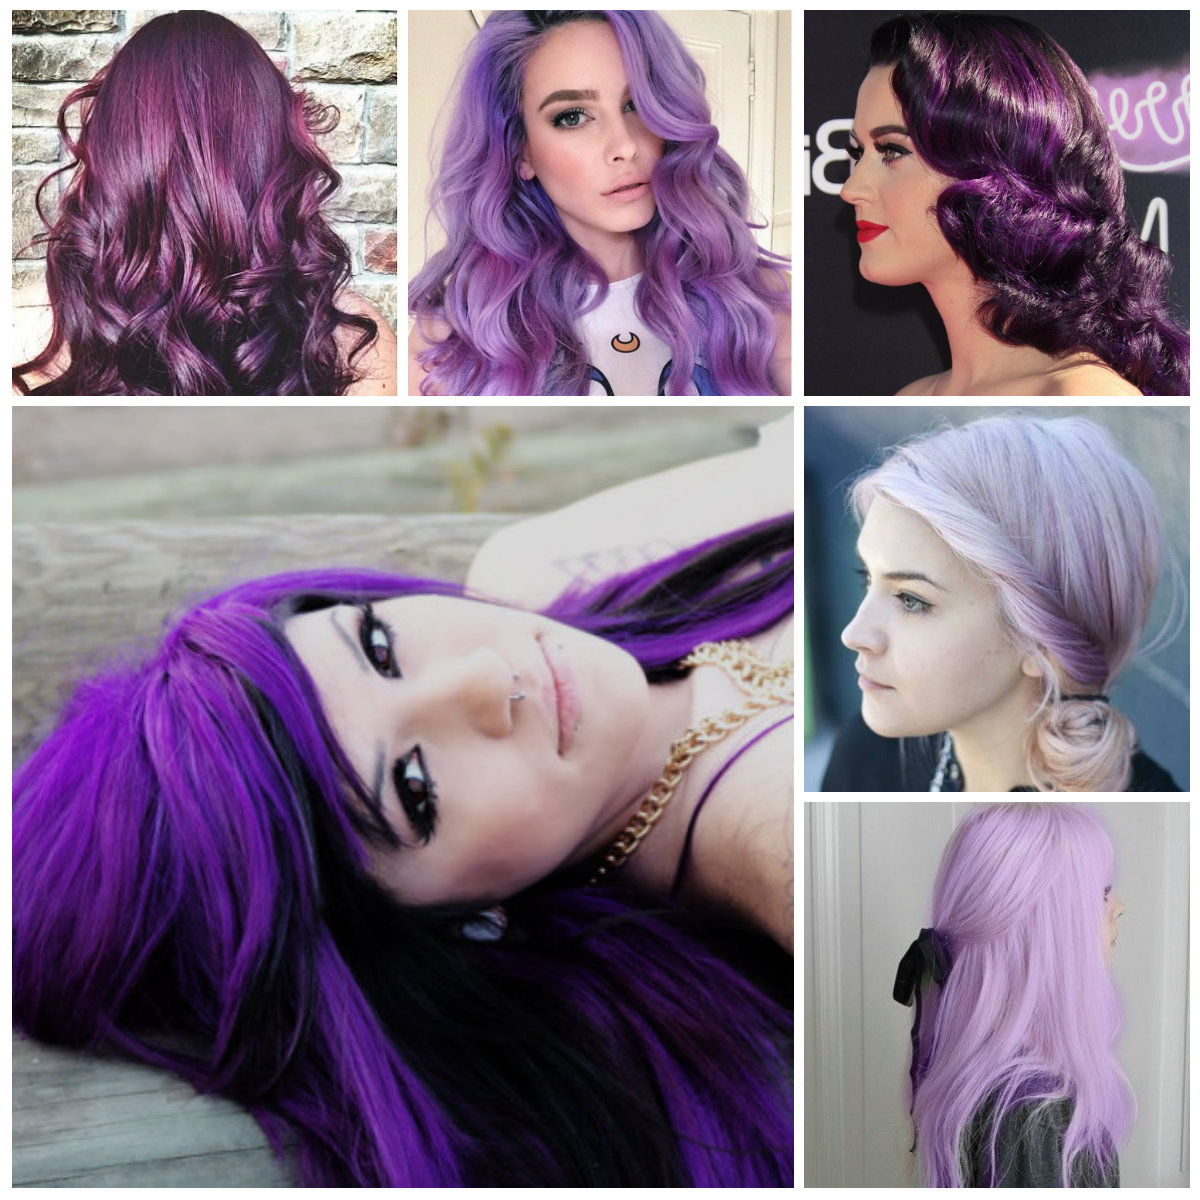 Hairstyles For Women 2019 (Gallery 19 of 20)